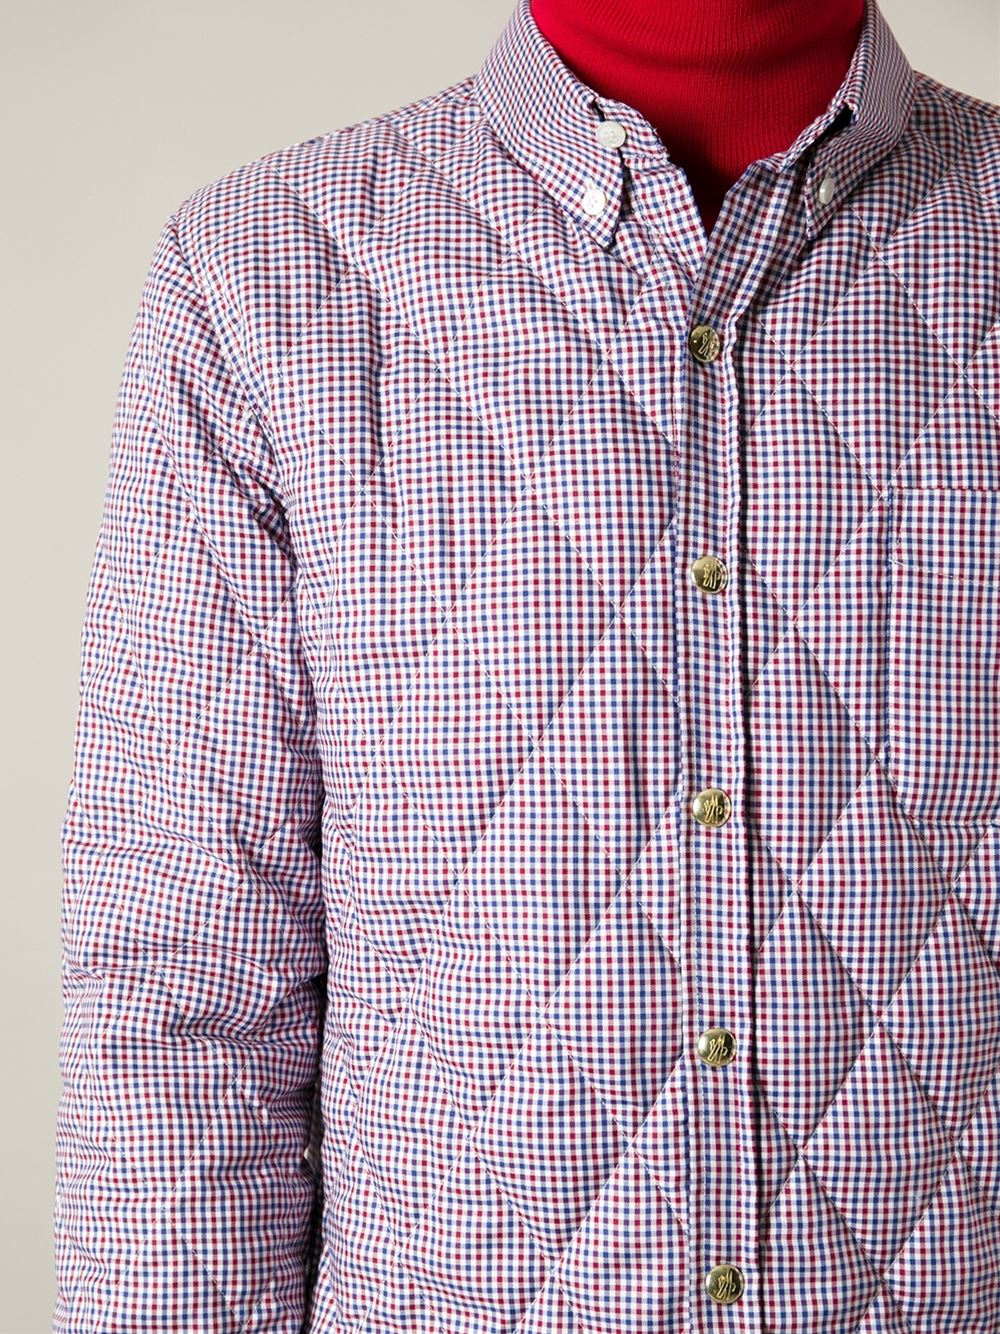 Quilted Buttondown Check Shirt blue & red